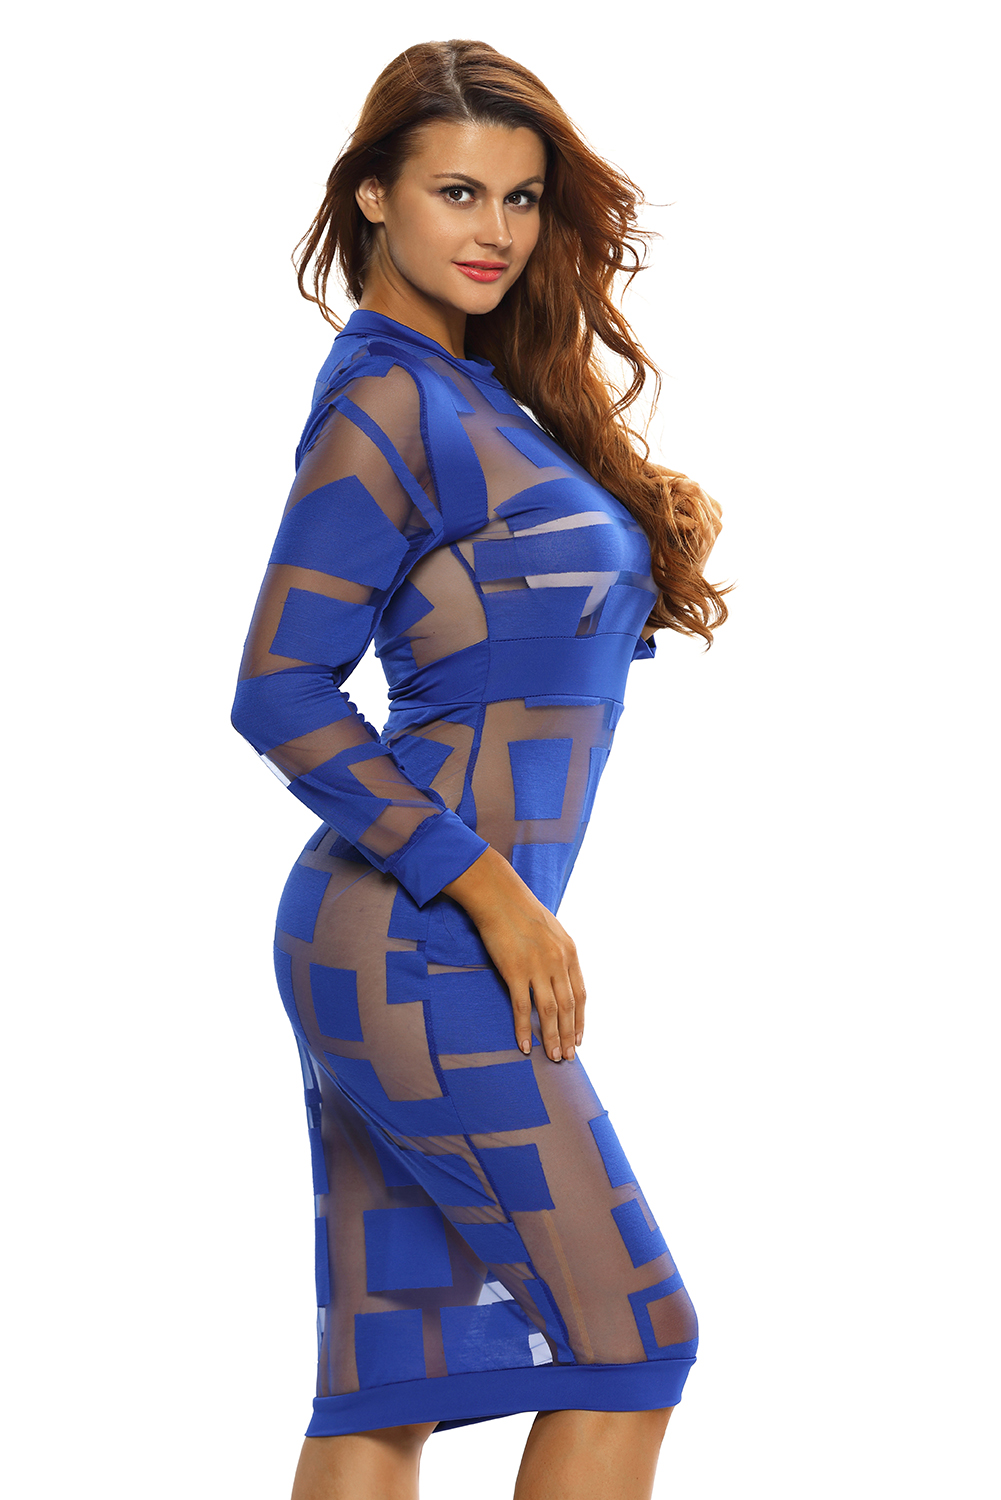 bf22475a1 women royal blue sheer mesh long sleeve dress little black stage o .